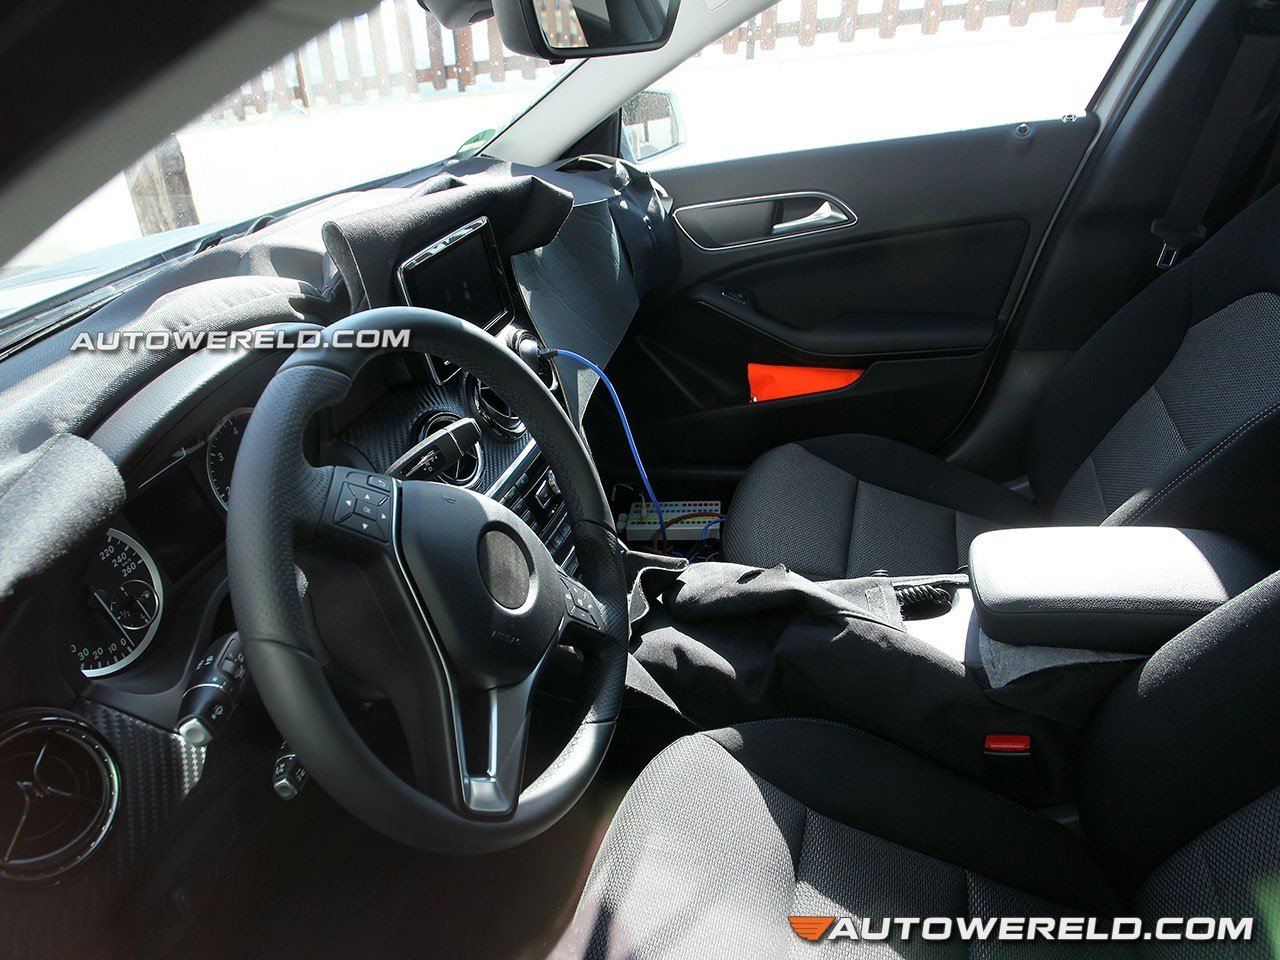 kijkje in interieur mercedes benz gla spyshots. Black Bedroom Furniture Sets. Home Design Ideas